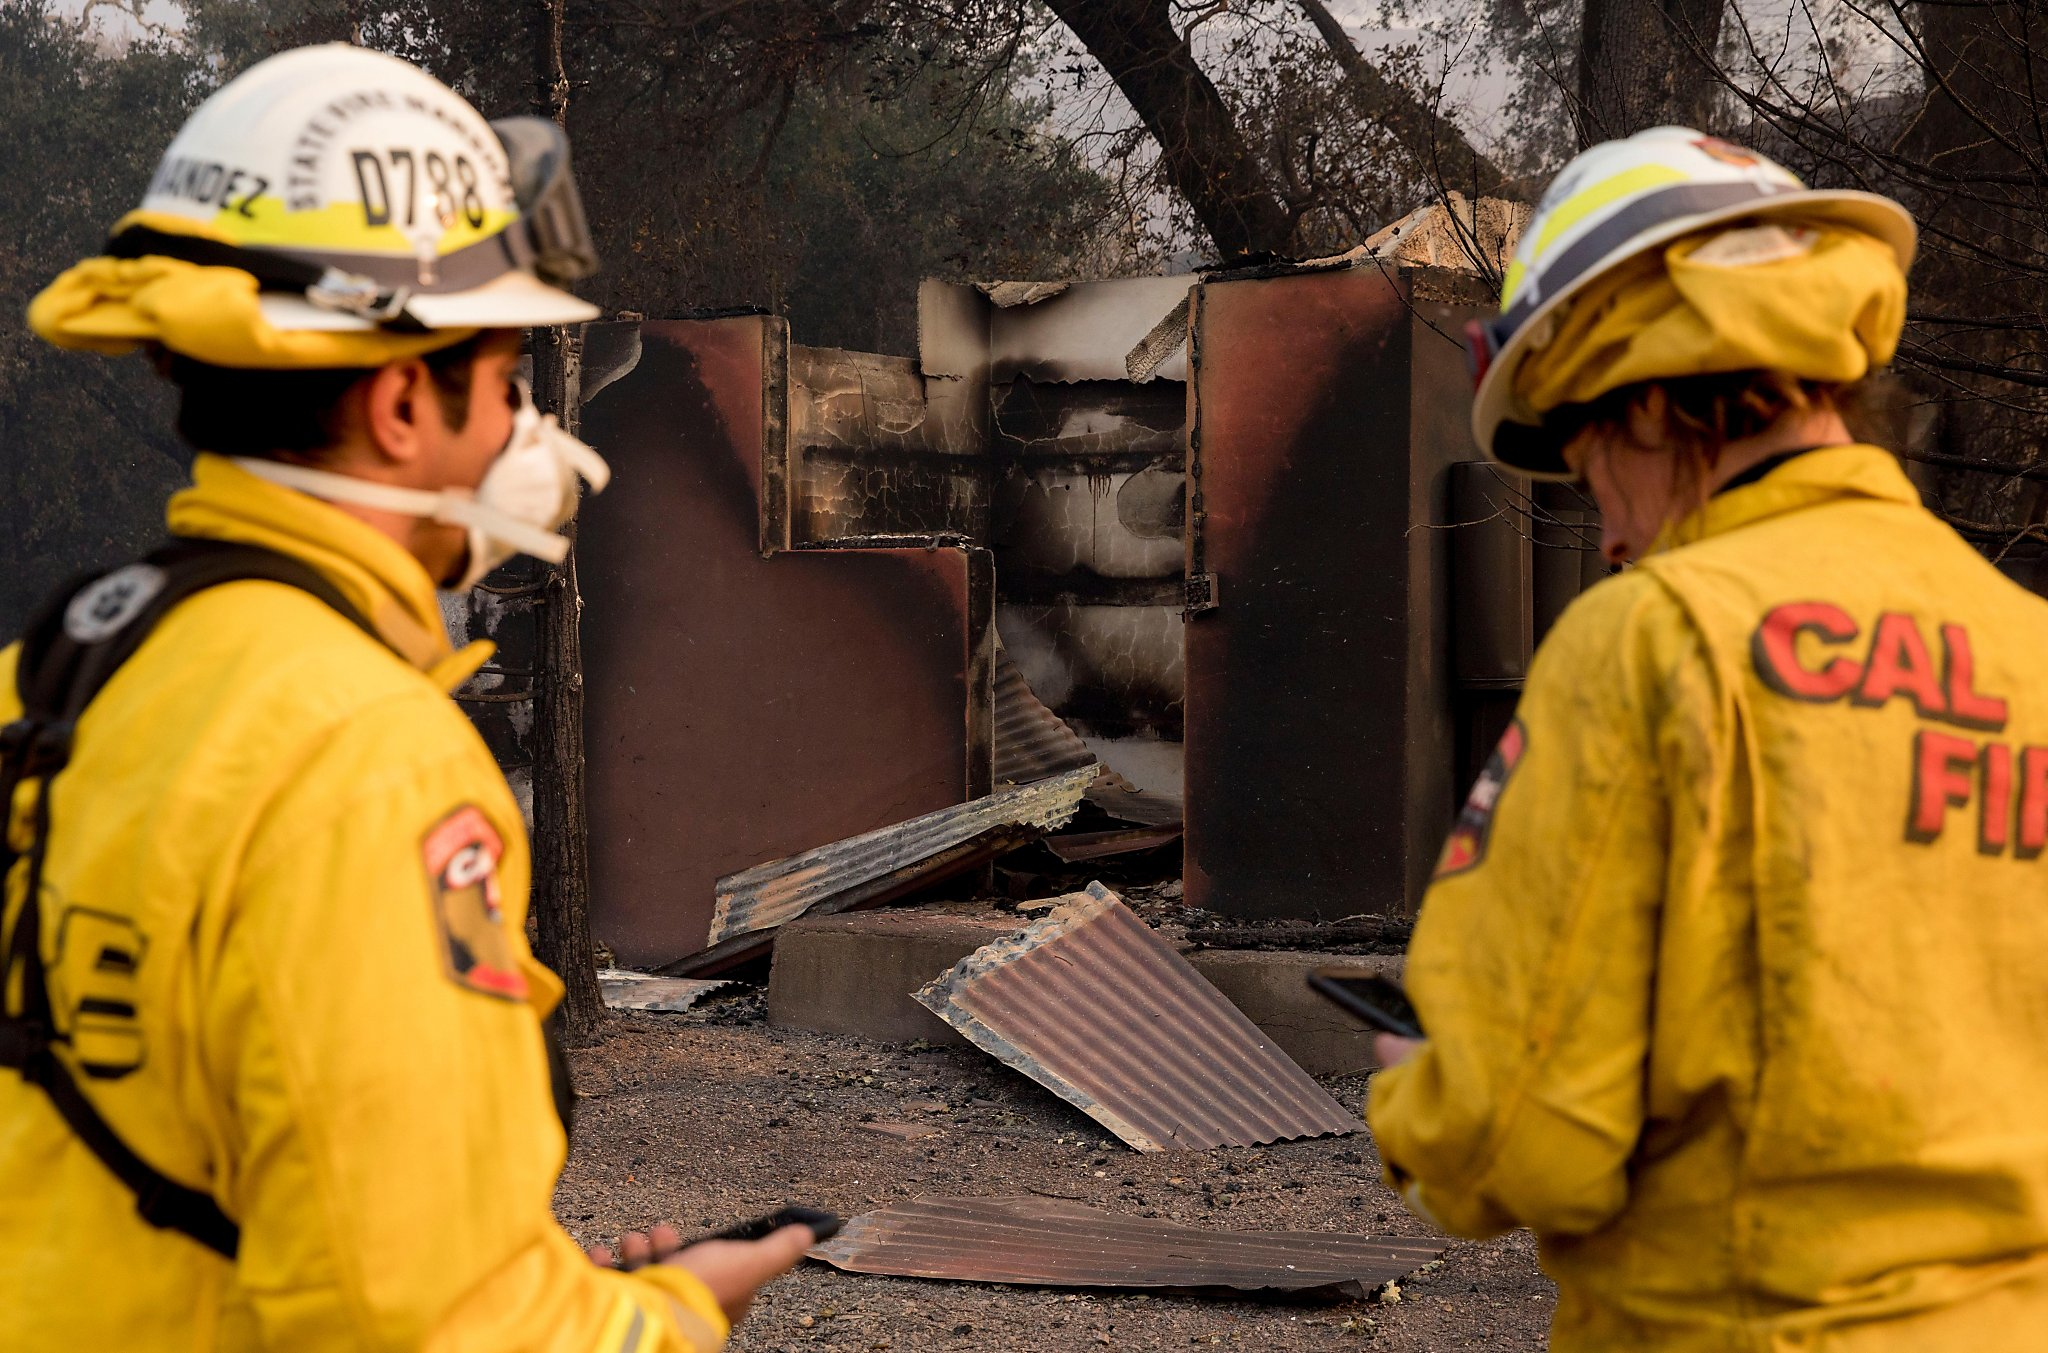 Cal Fire suspends burn permits for Santa Clara, Alameda, Contra Costa counties as dry weather persists